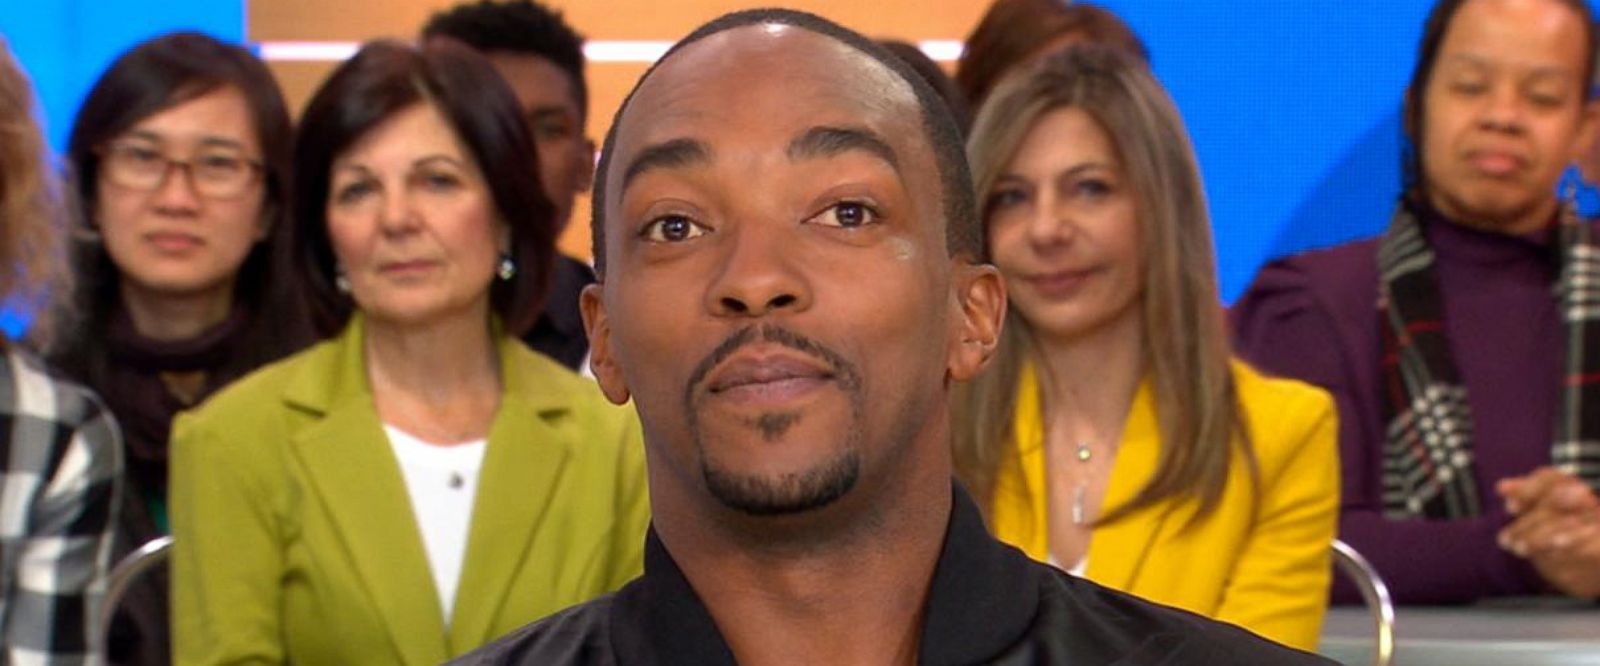 VIDEO: 'GMA' Hot List: Anthony Mackie teases Mark Ruffalo as an 'institution of trouble'